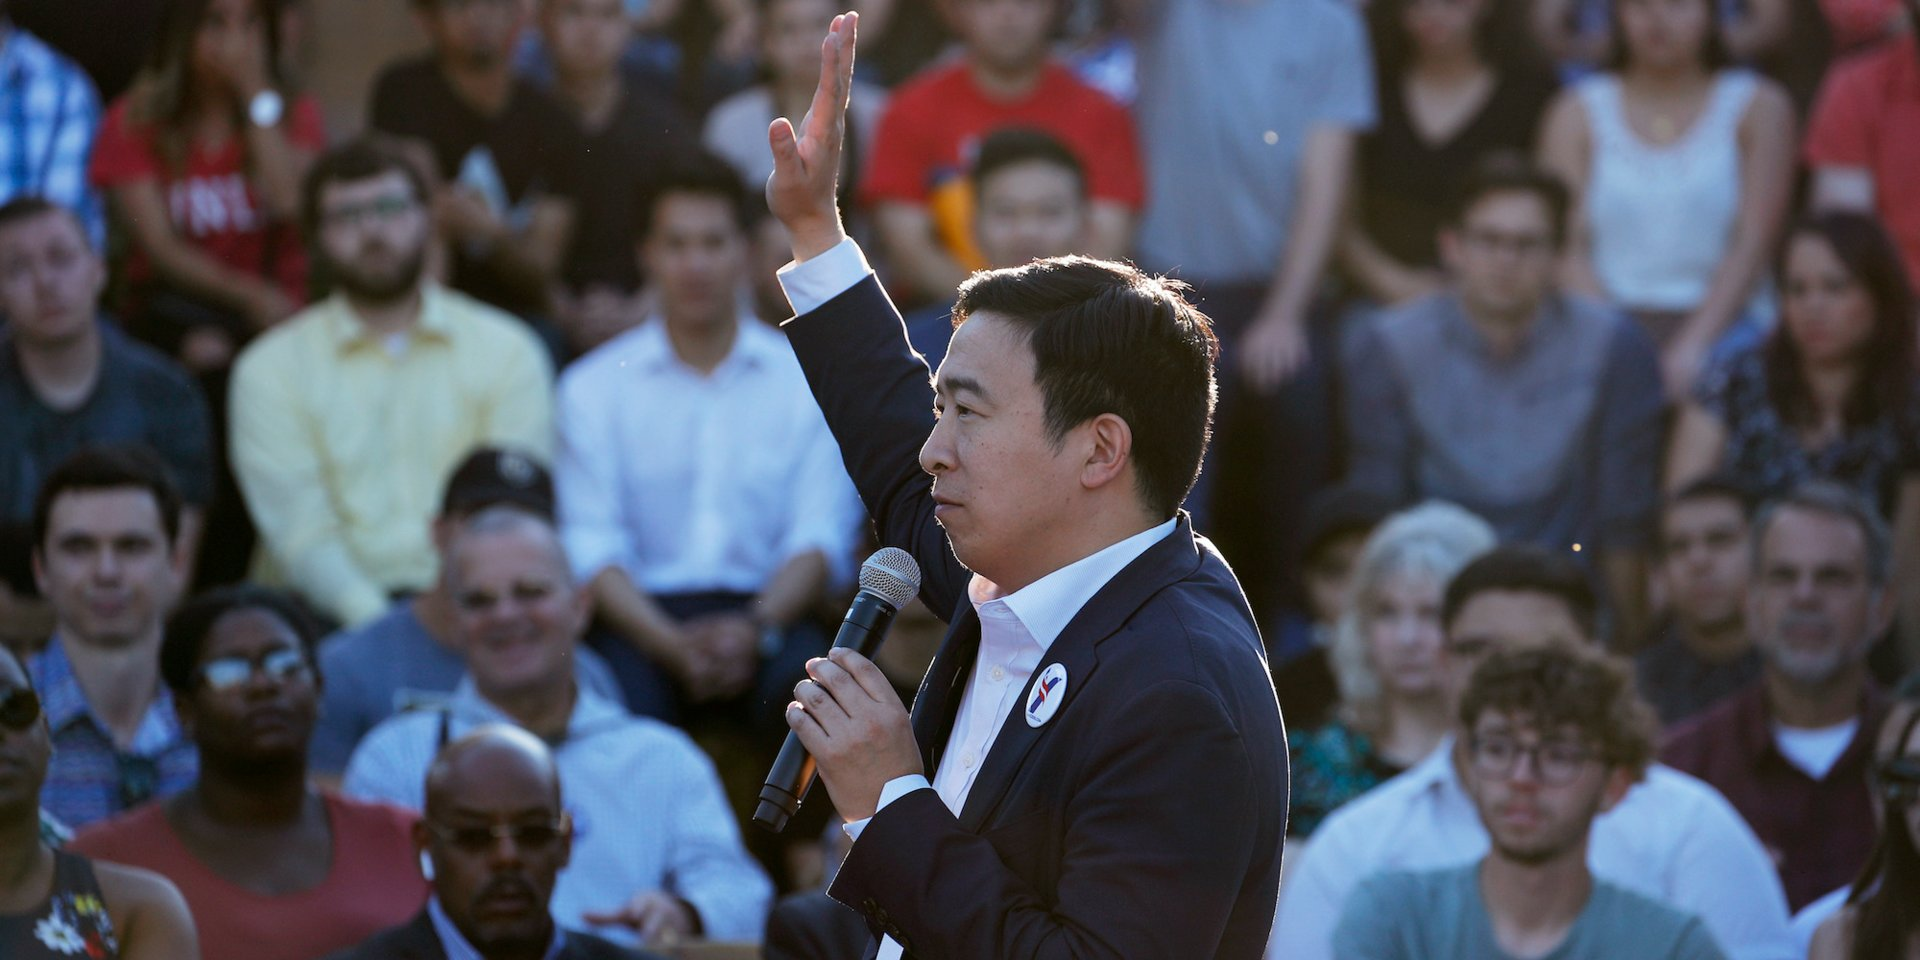 Democratic candidate Andrew Yang just promised to give 10 American families $12,000 over a year of 'universal basic income.' Here's how the radical policy plan would actually work.